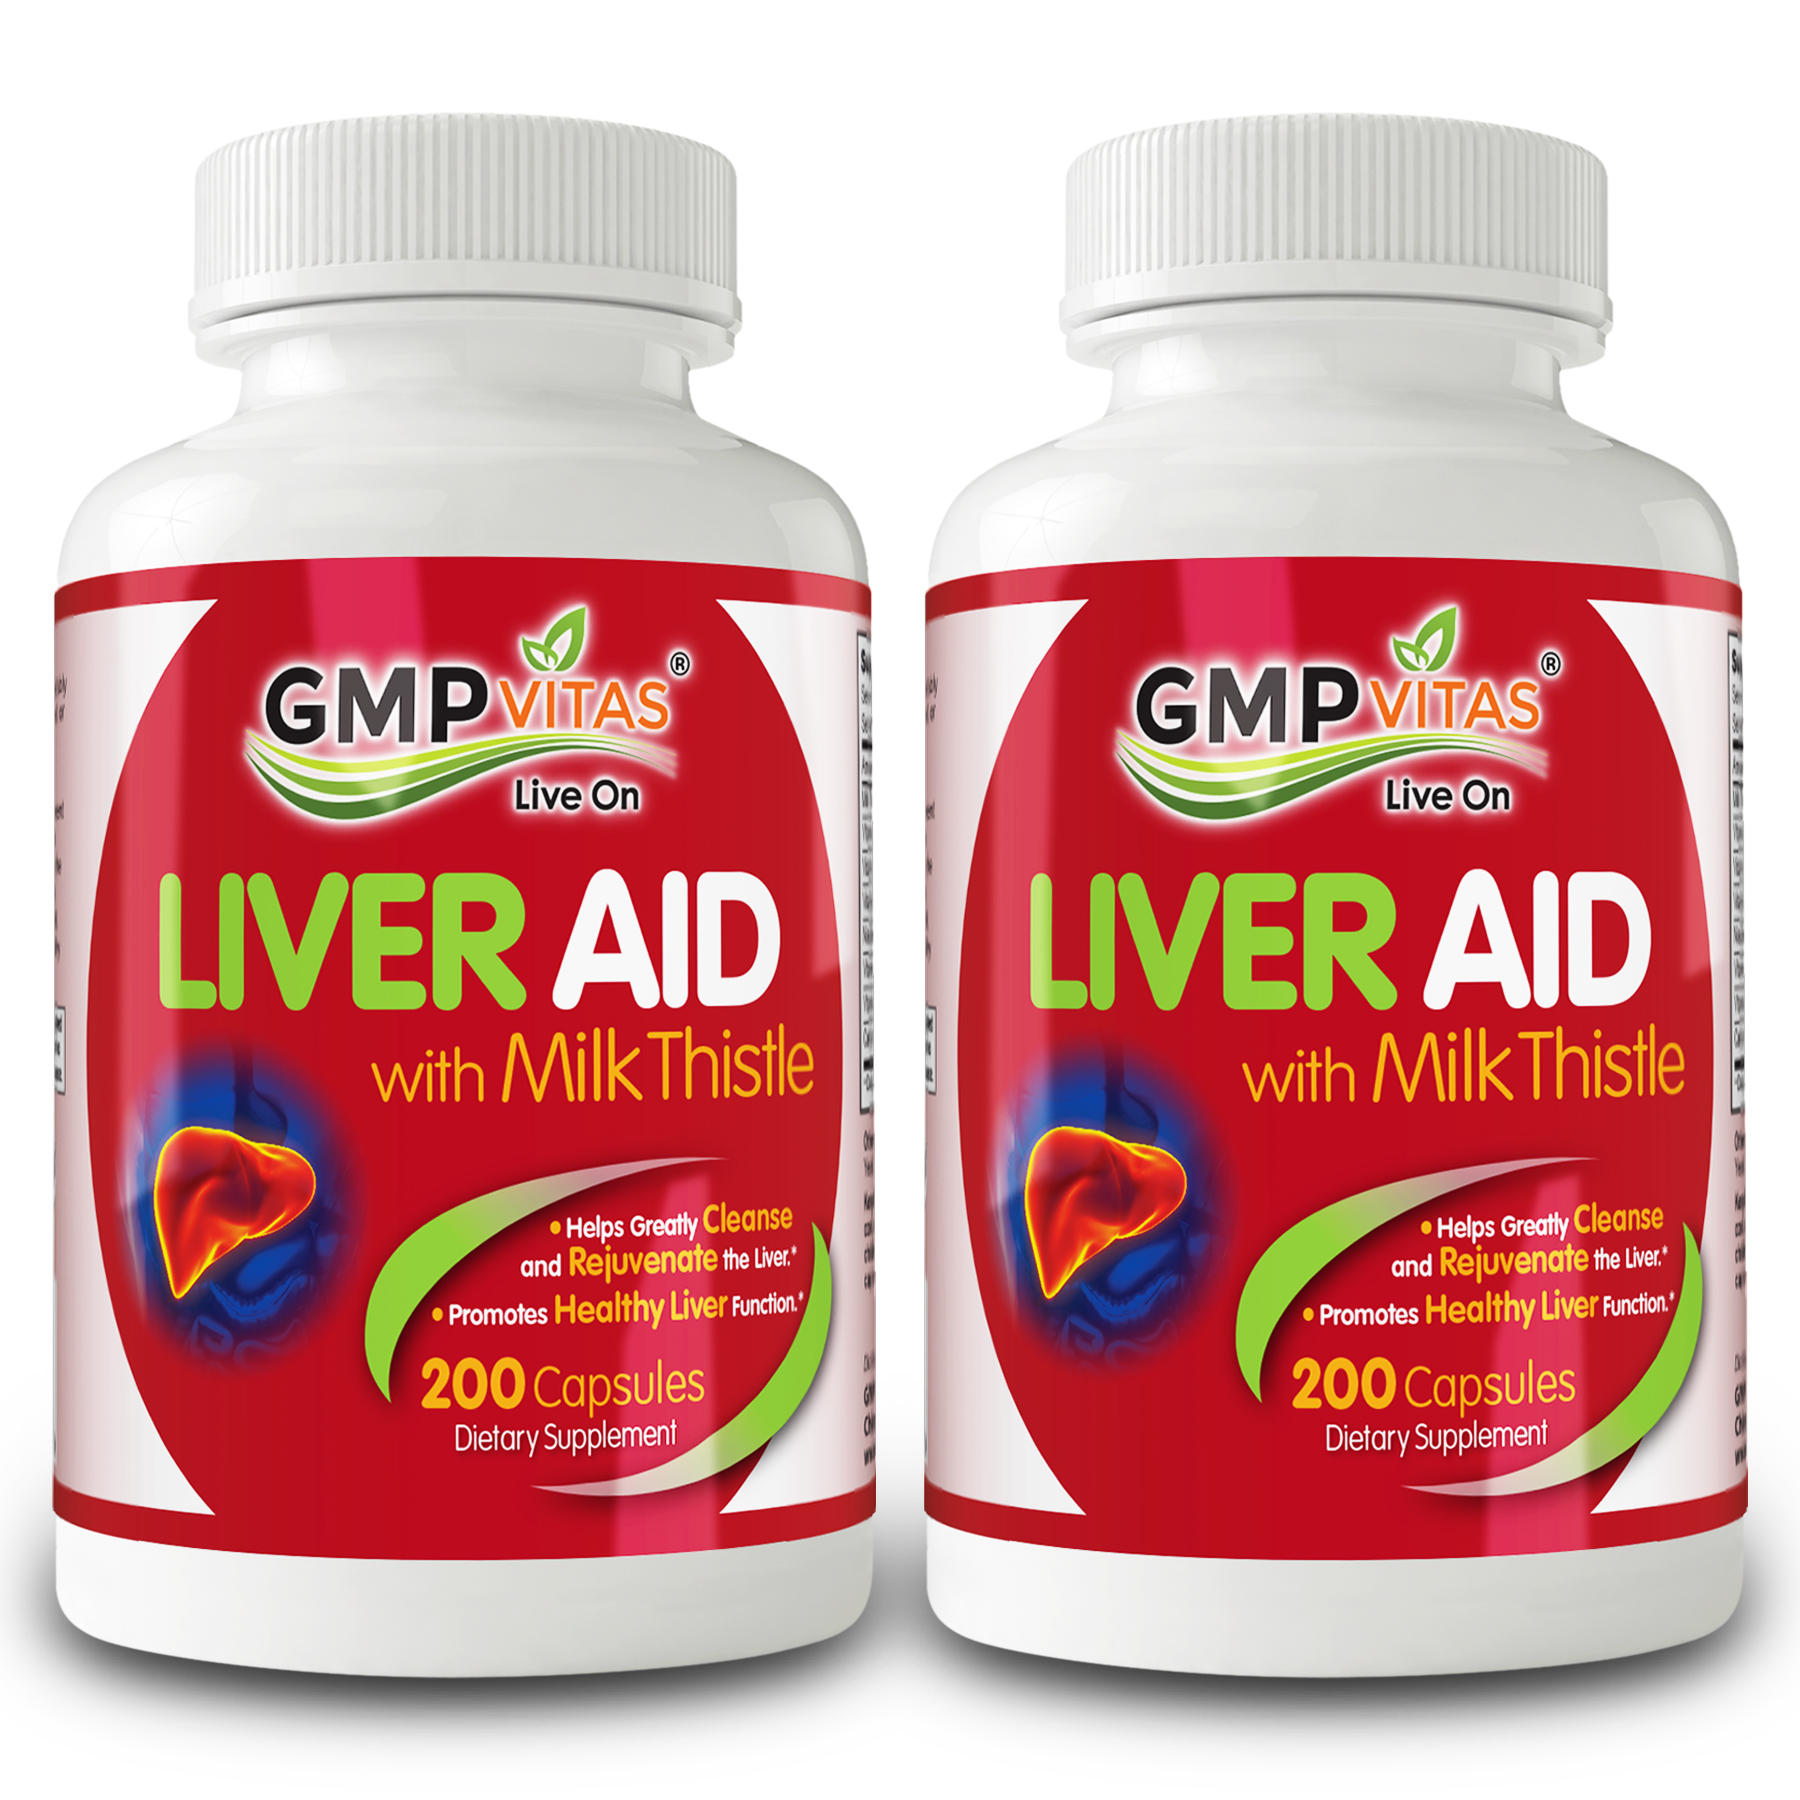 15% off GMP Vitas Liver Aid With Milk Thistle 200 Capsules Bundle